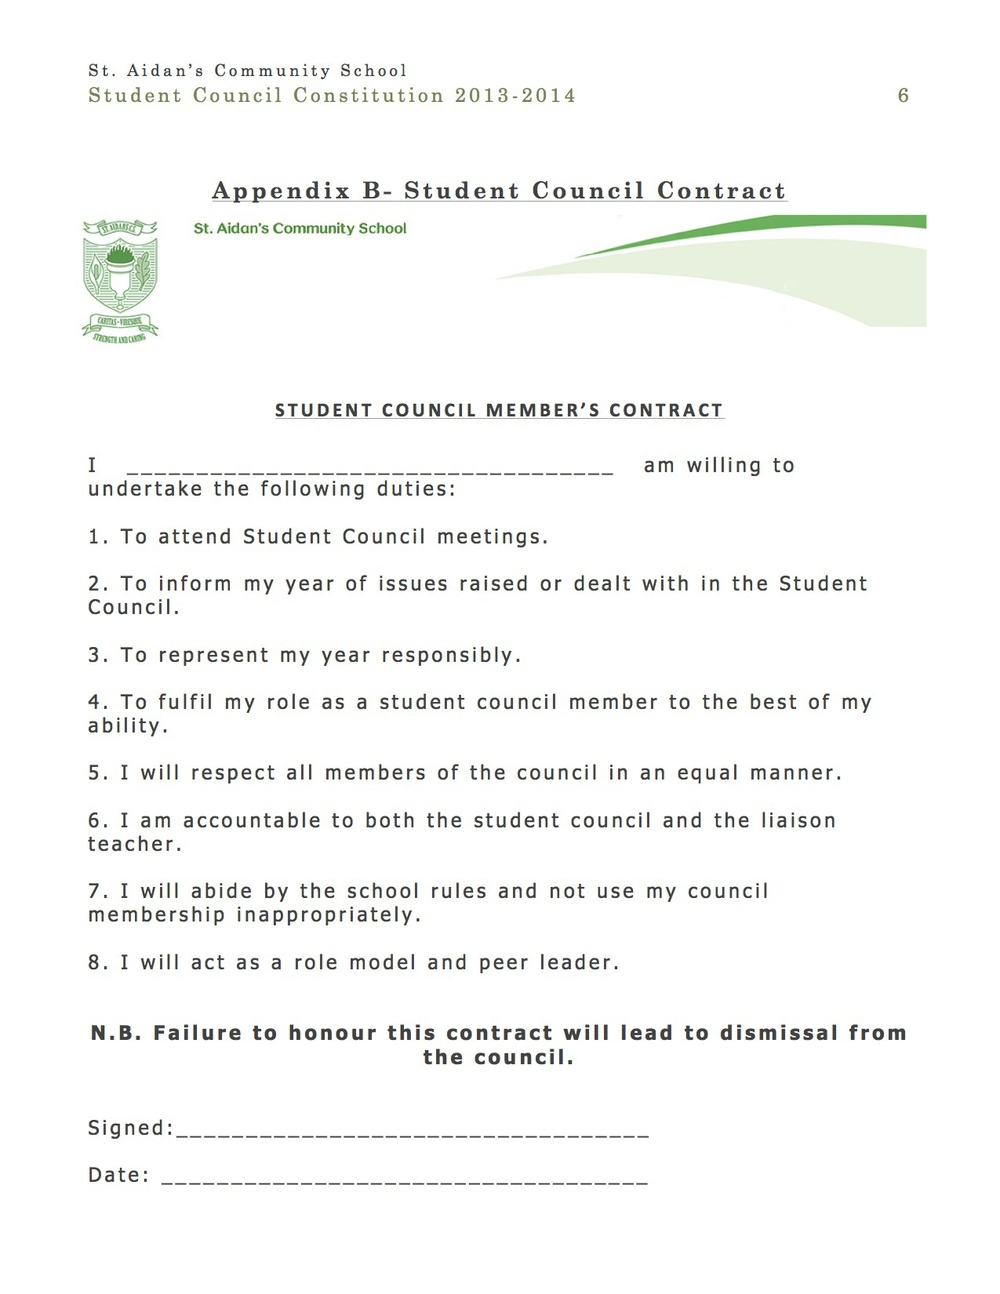 Student Council Constitution Doc6.jpg